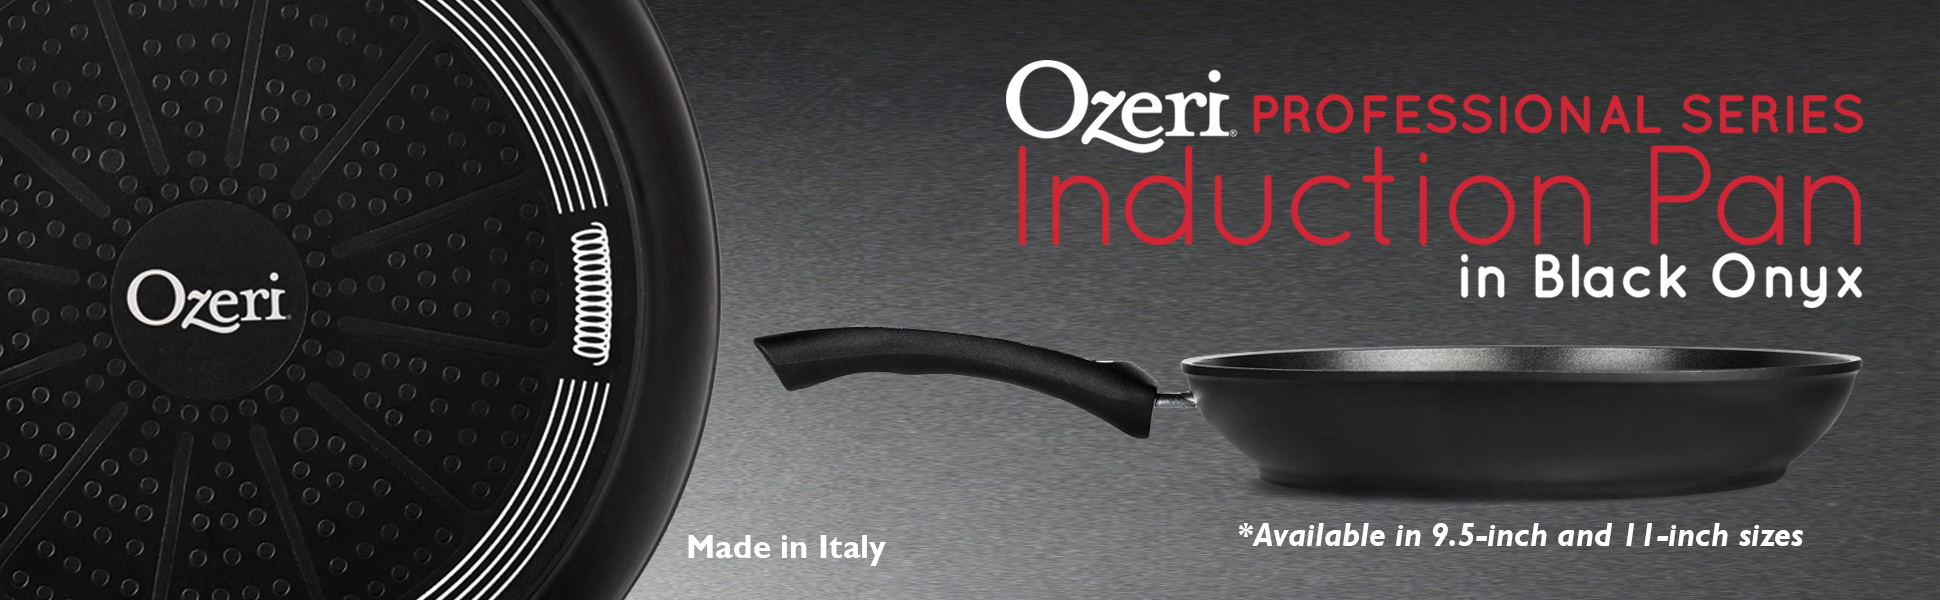 Ozeri Professional Series Ceramic Earth Pan, Hand Cast and Made in Germany